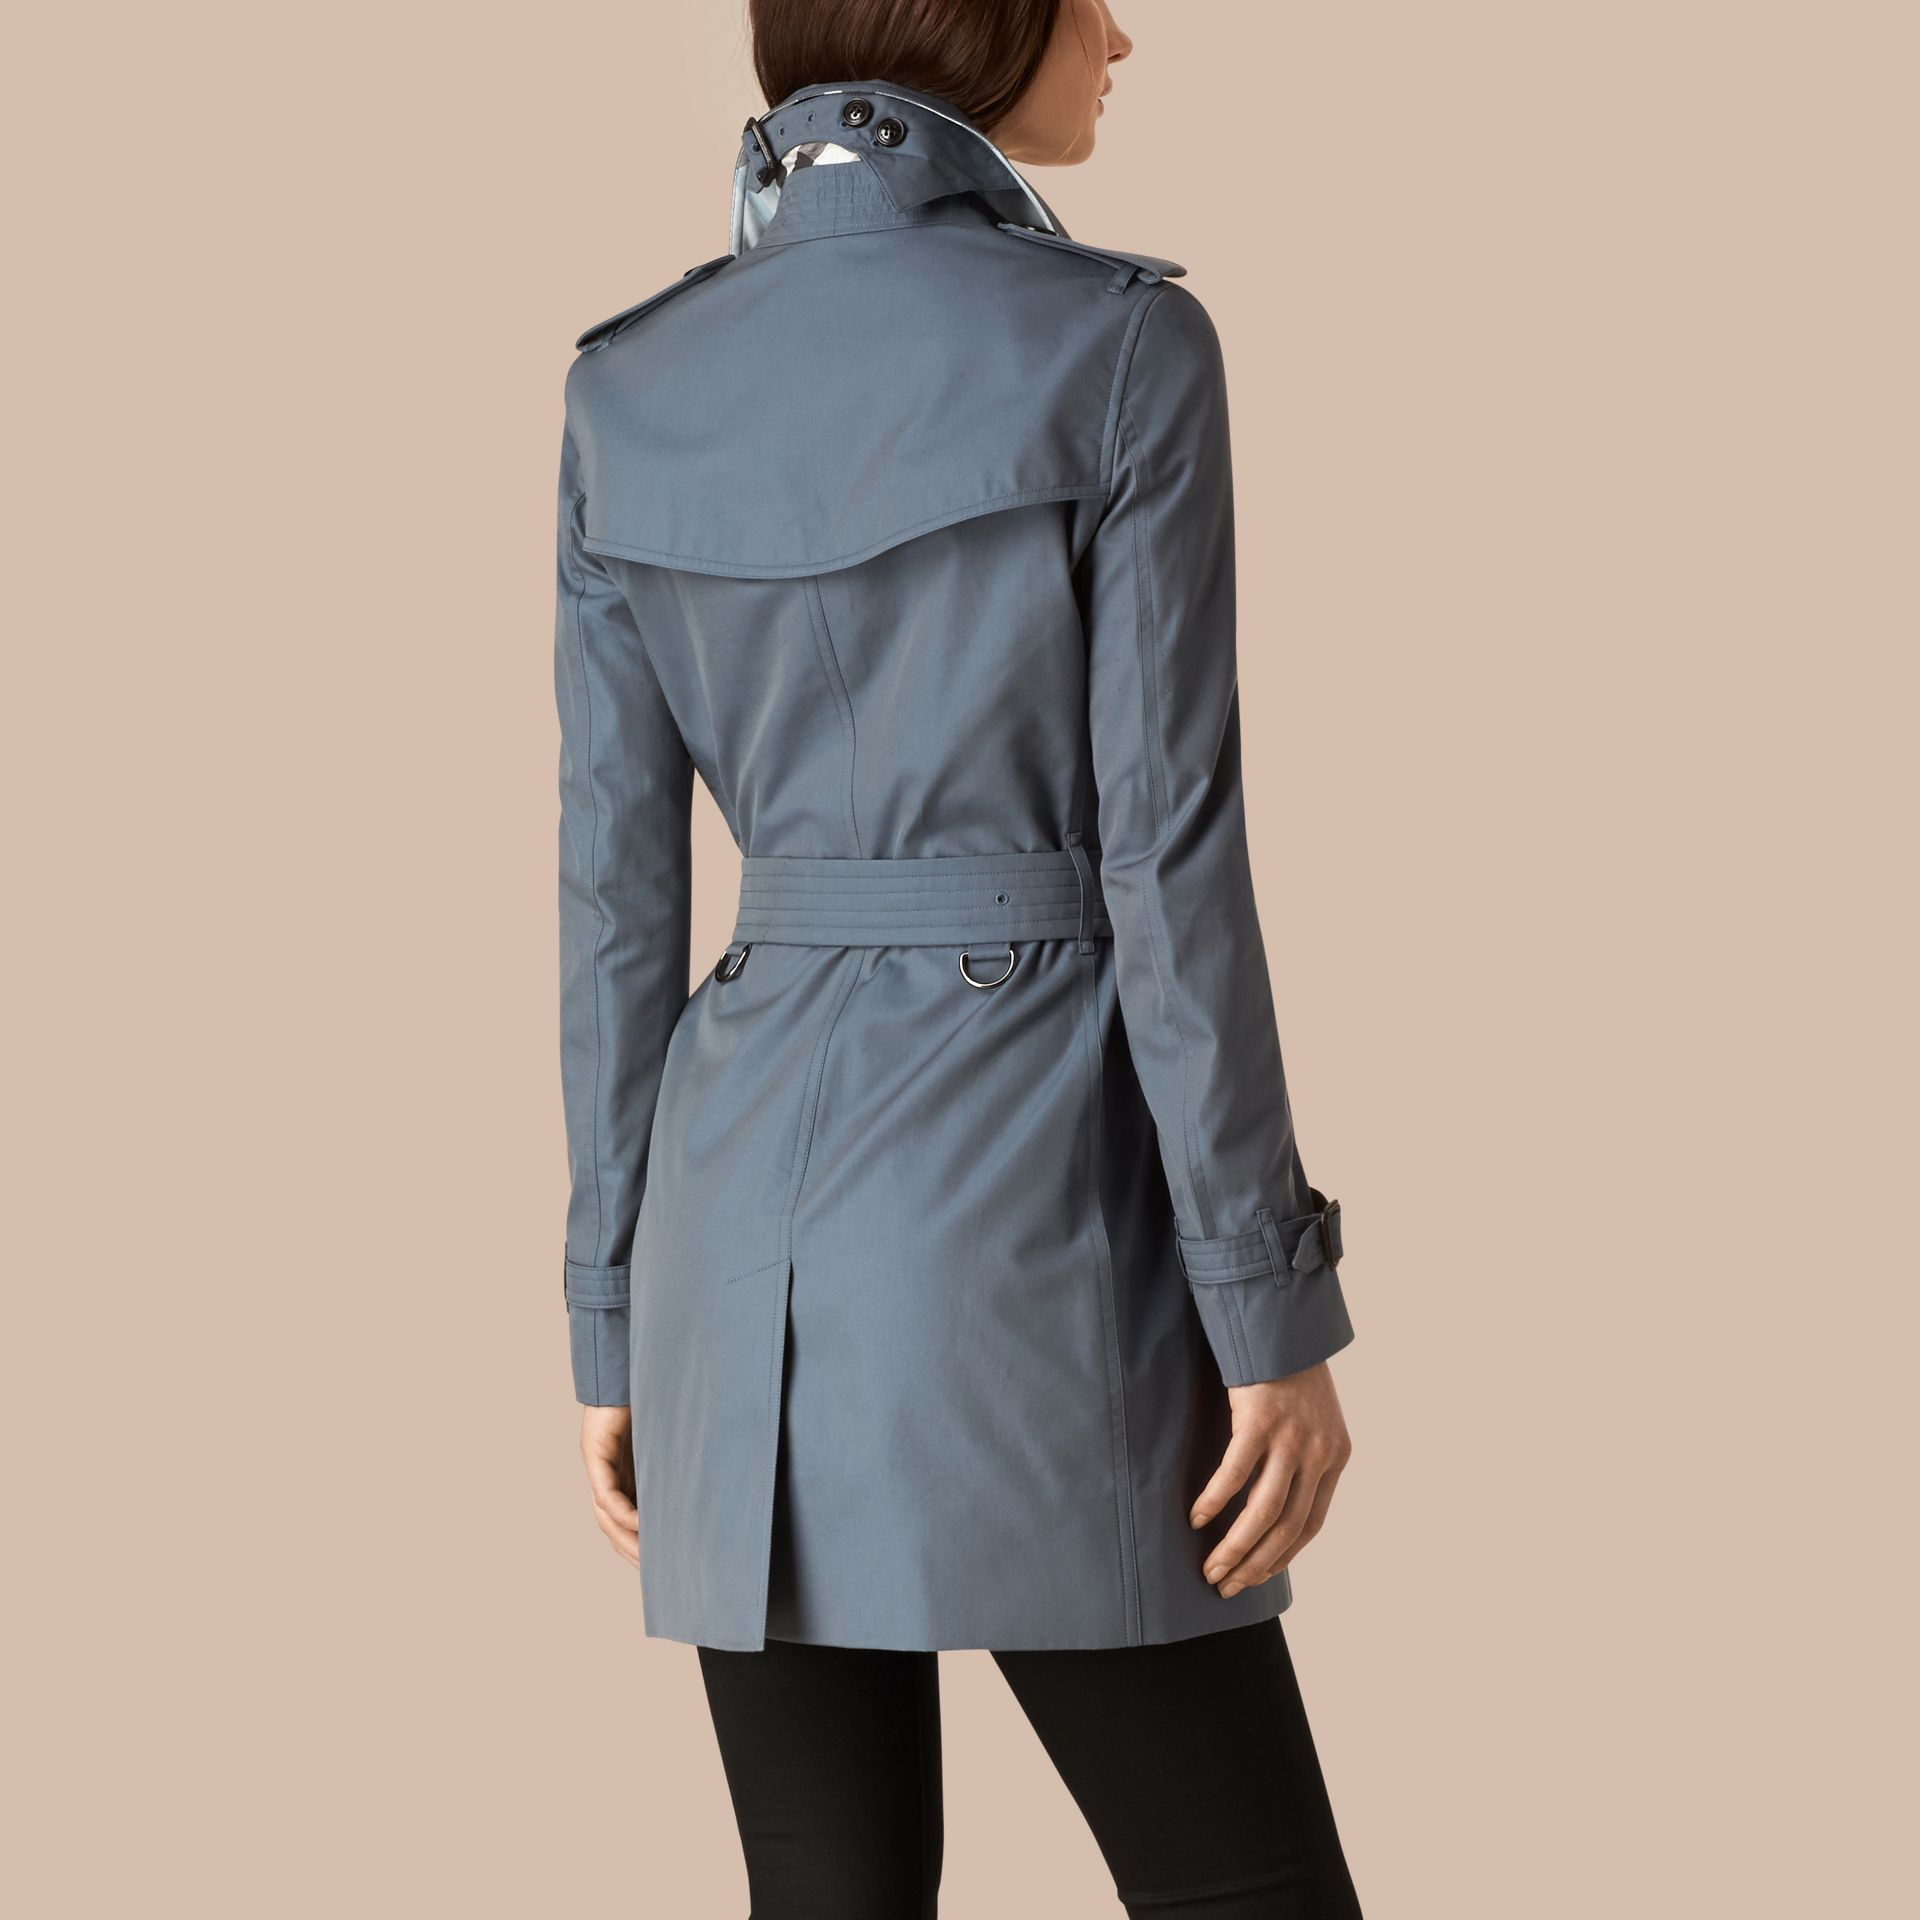 Empire blue Lightweight Cotton Gabardine Trench Coat Empire Blue - gallery image 3